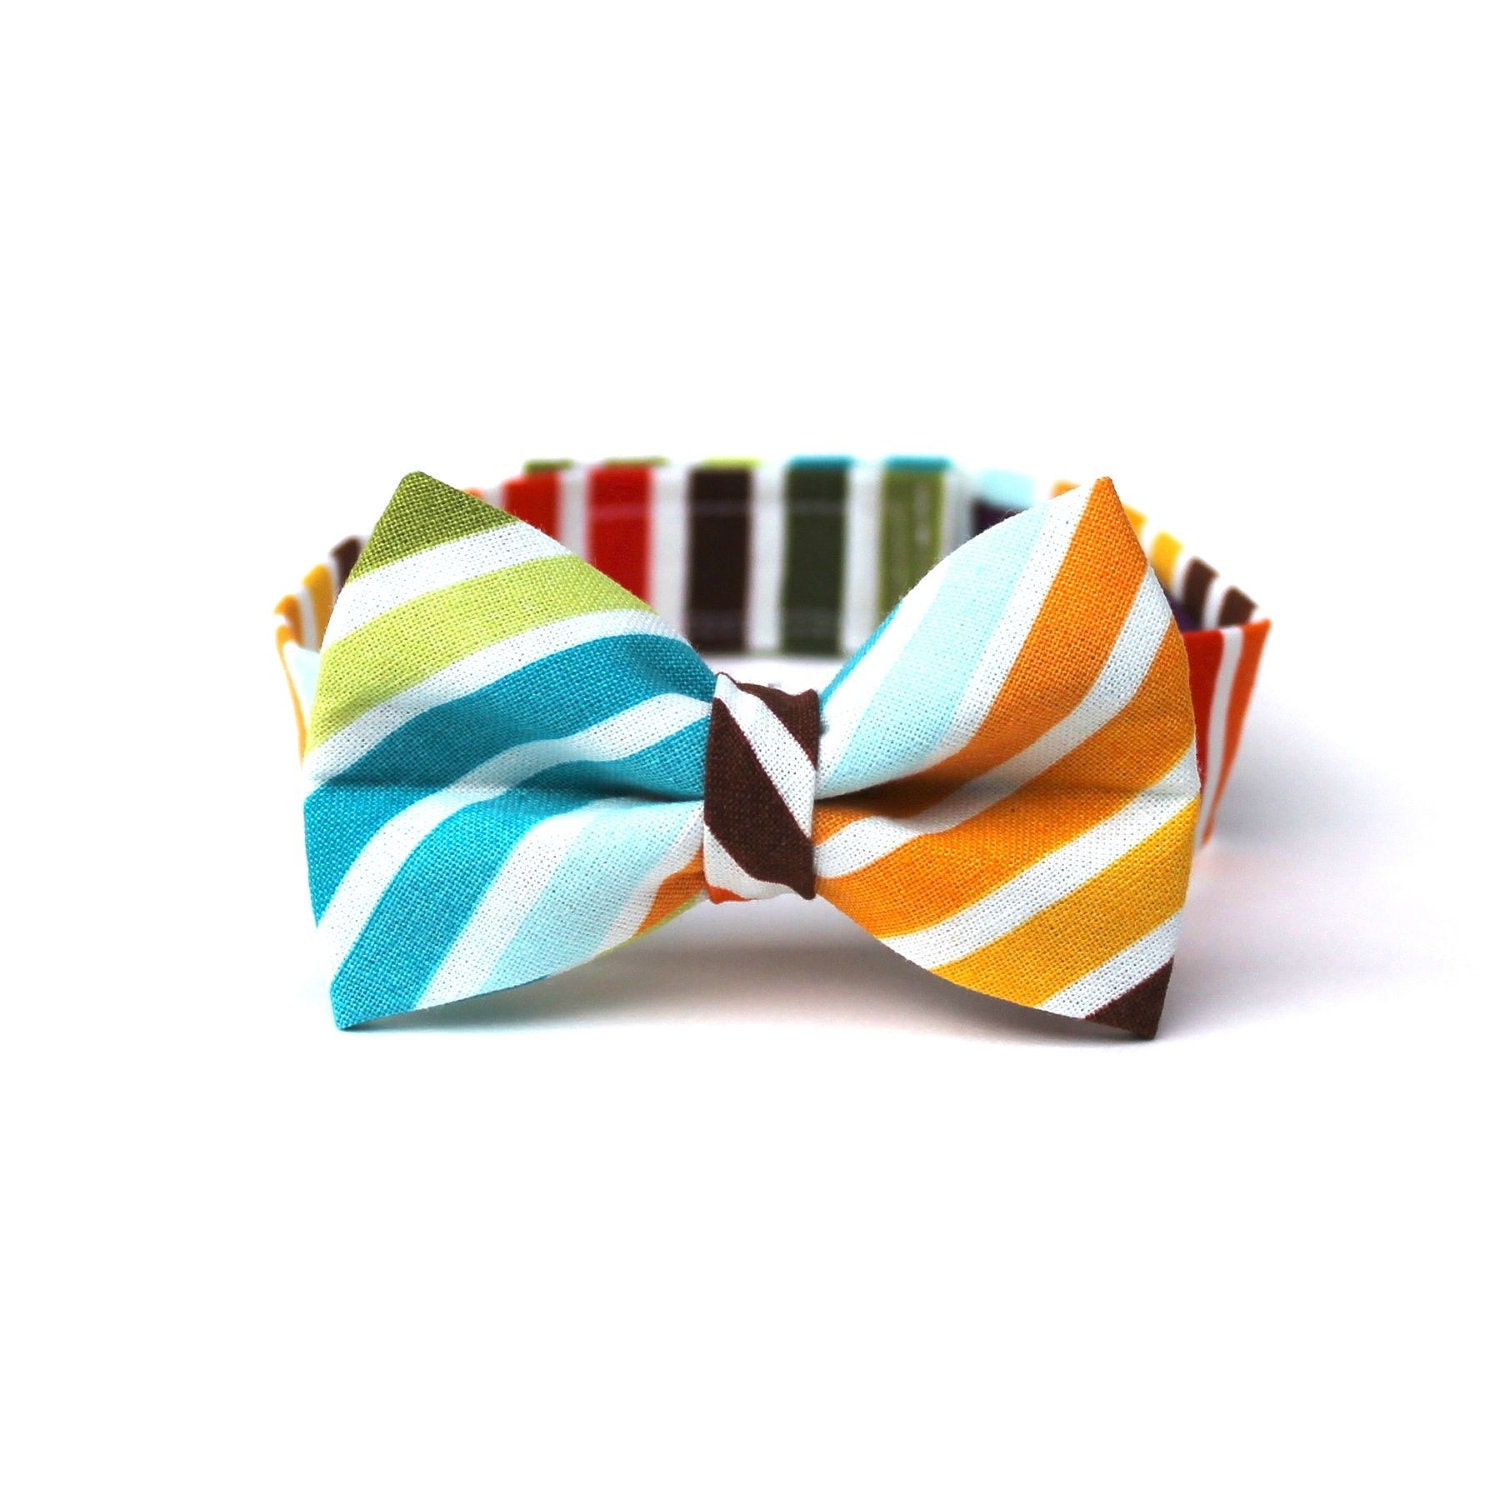 Baby Boy's Bow Tie - Multicolor Stripe - Brown Red Orange Yellow Green Blue White